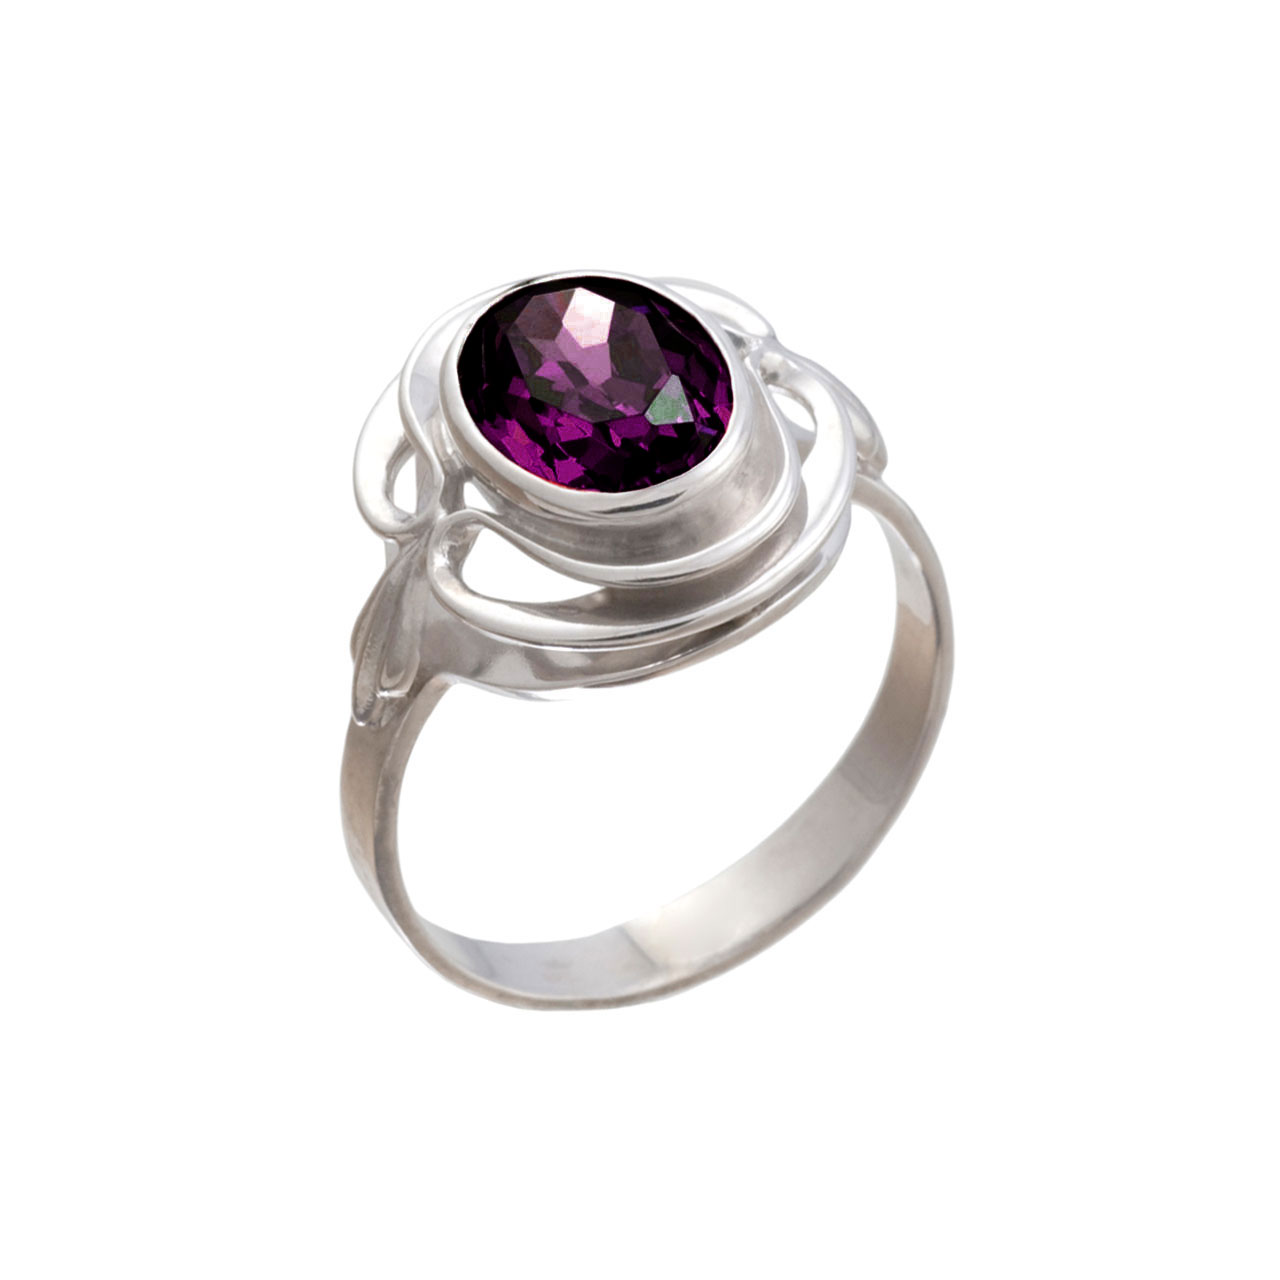 Silver Ring With Colored Swarovski Elements: An Amethyst